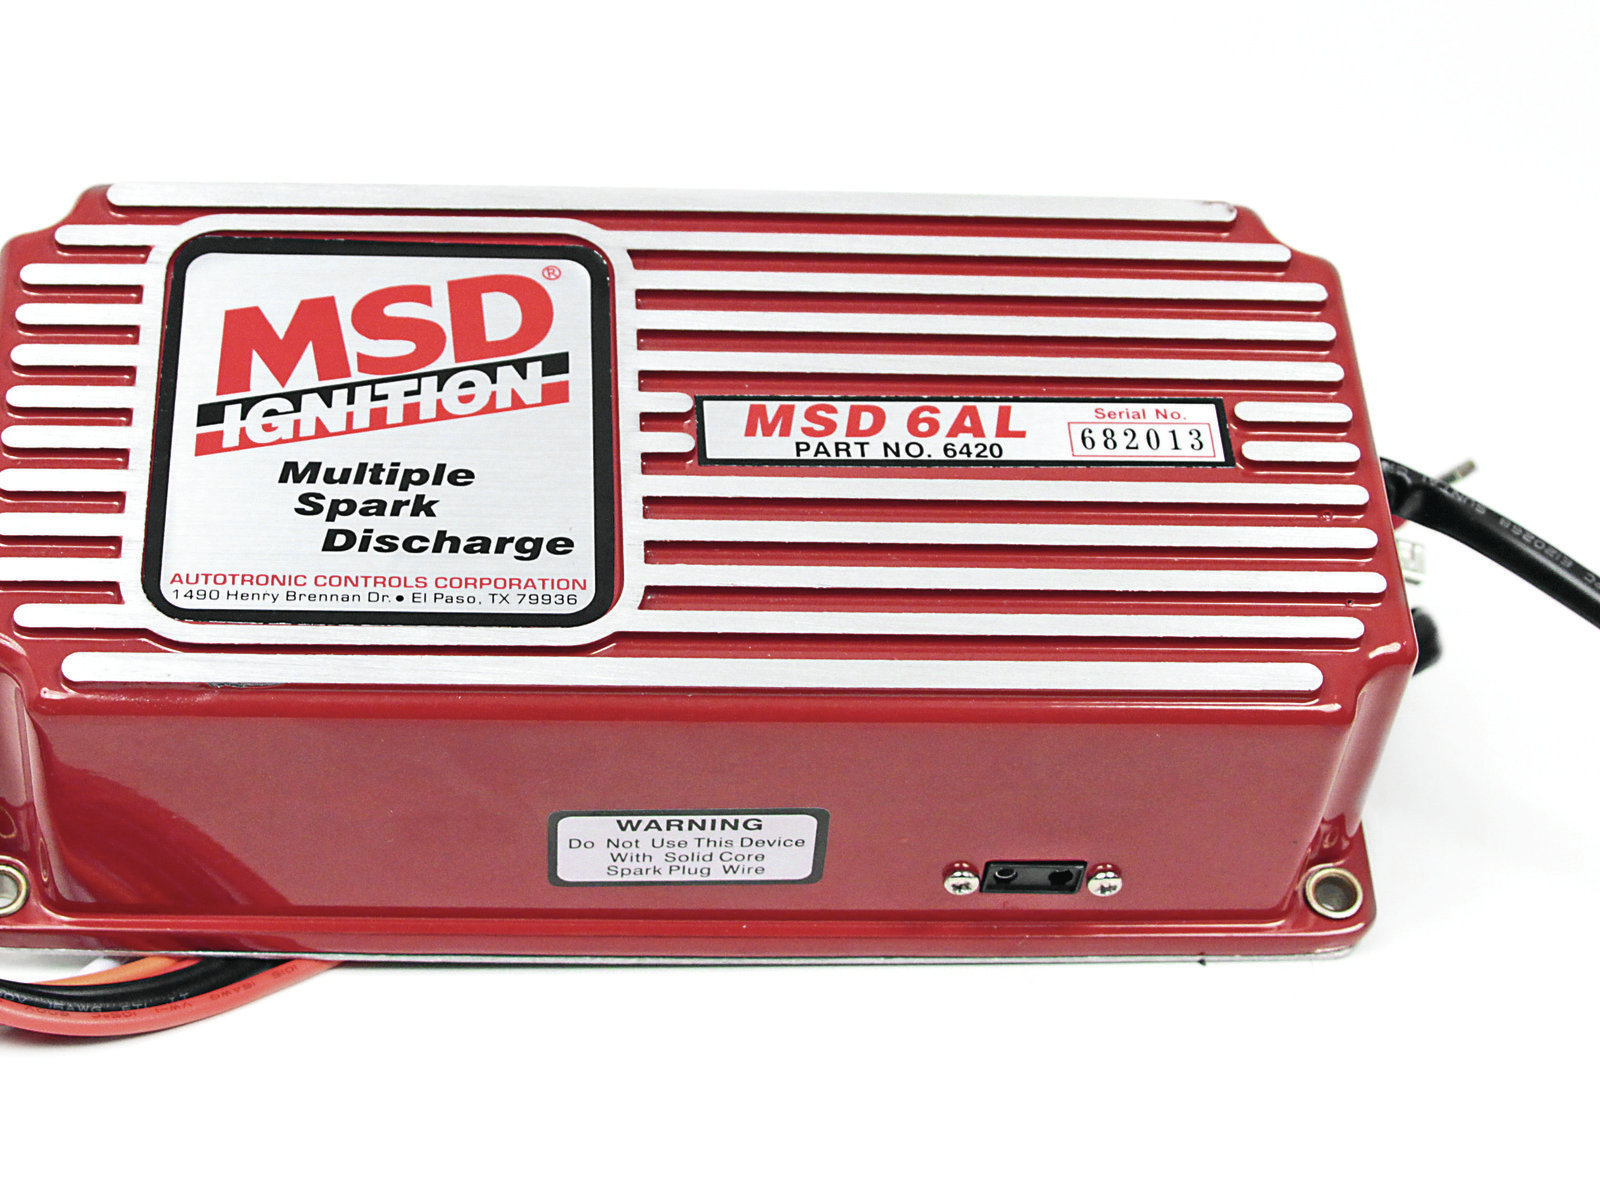 [Fake] Check the Components: Does it use the right fasteners, wires, and connections? Counterfeit, knock-off, and copycat parts have become a plague on the automotive performance industry. Can you tell which of these MSD 6AL ignition boxes is the fake? Turn the page to find out!